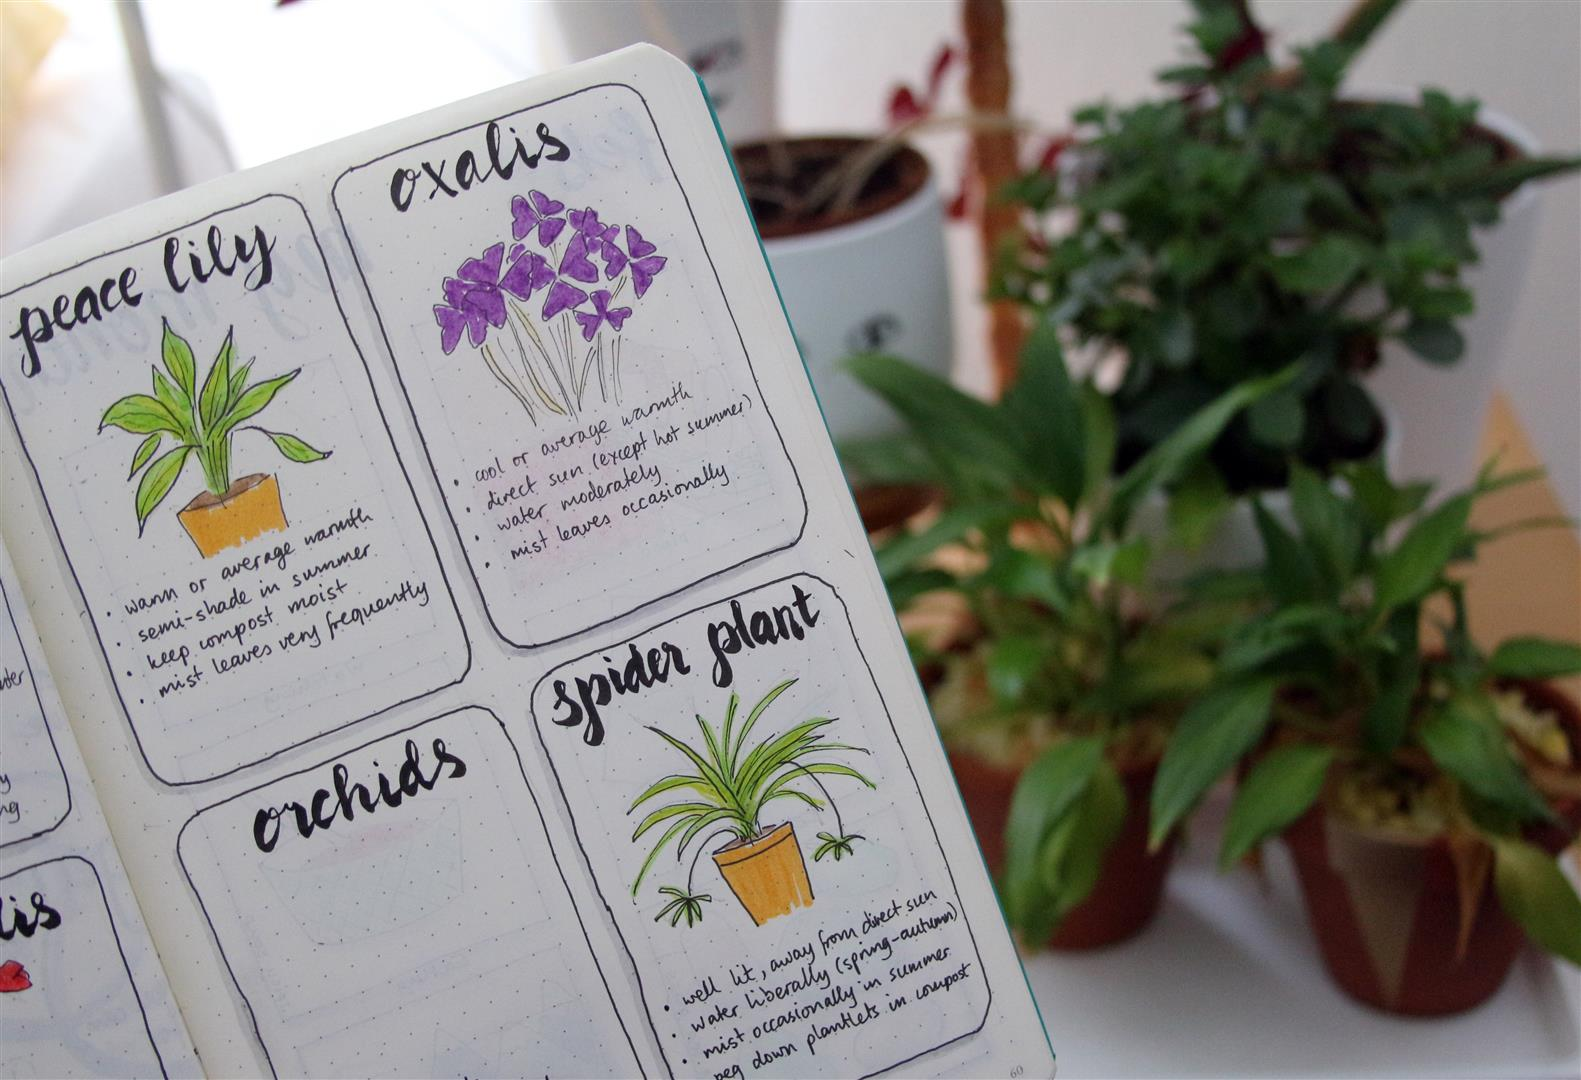 Emuse bullet journal ideas plant care bullet journal ideas plant care izmirmasajfo